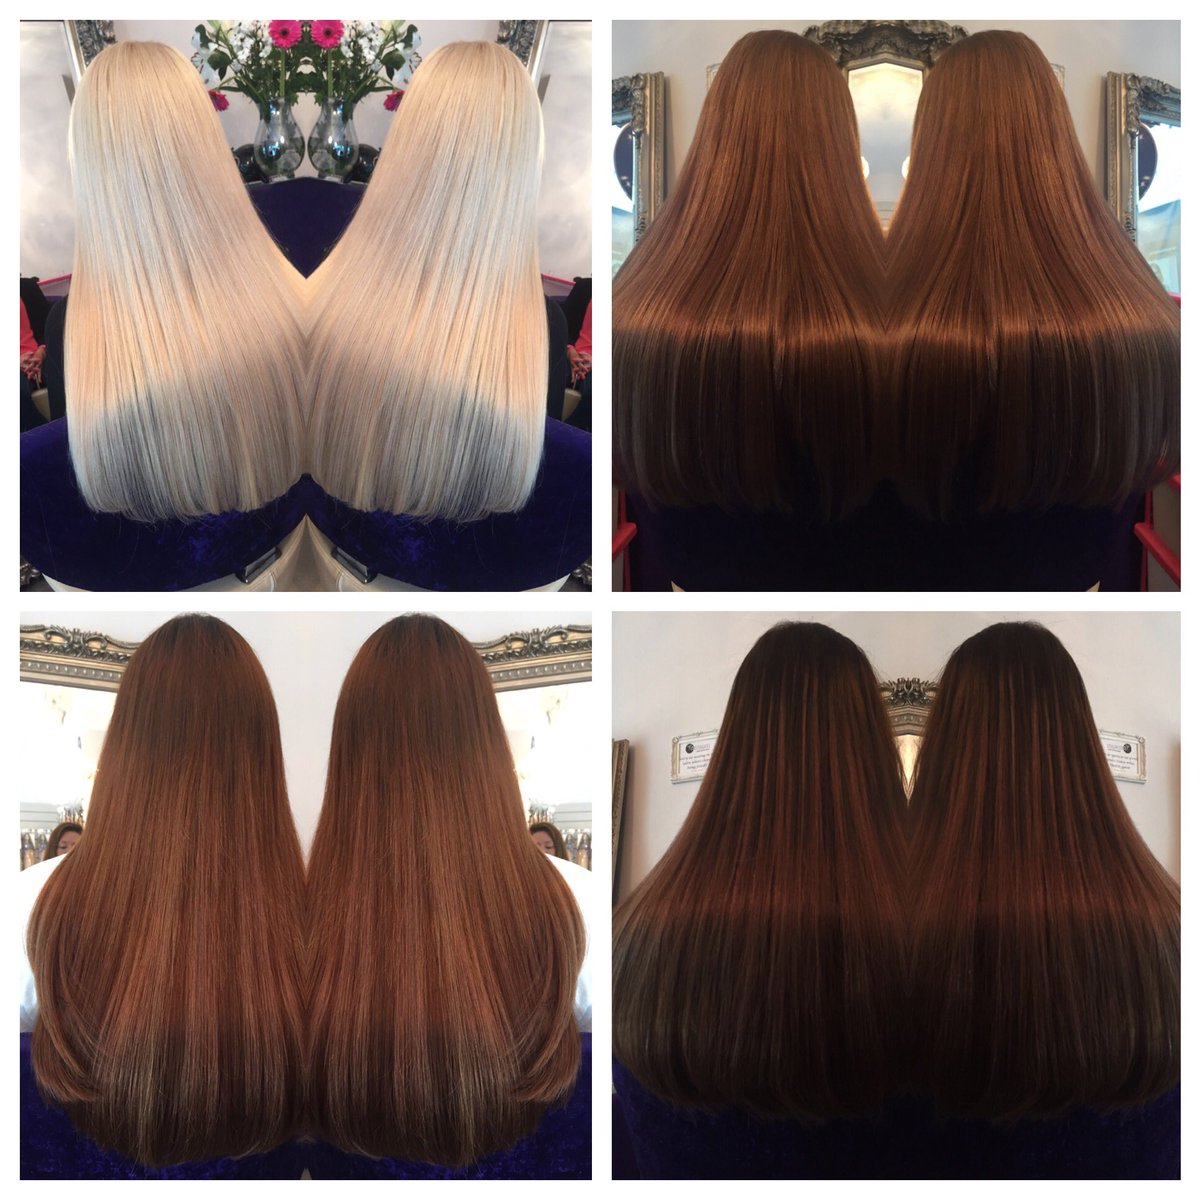 Tantrum Extensions On Twitter Amazing Blends By The Guildford